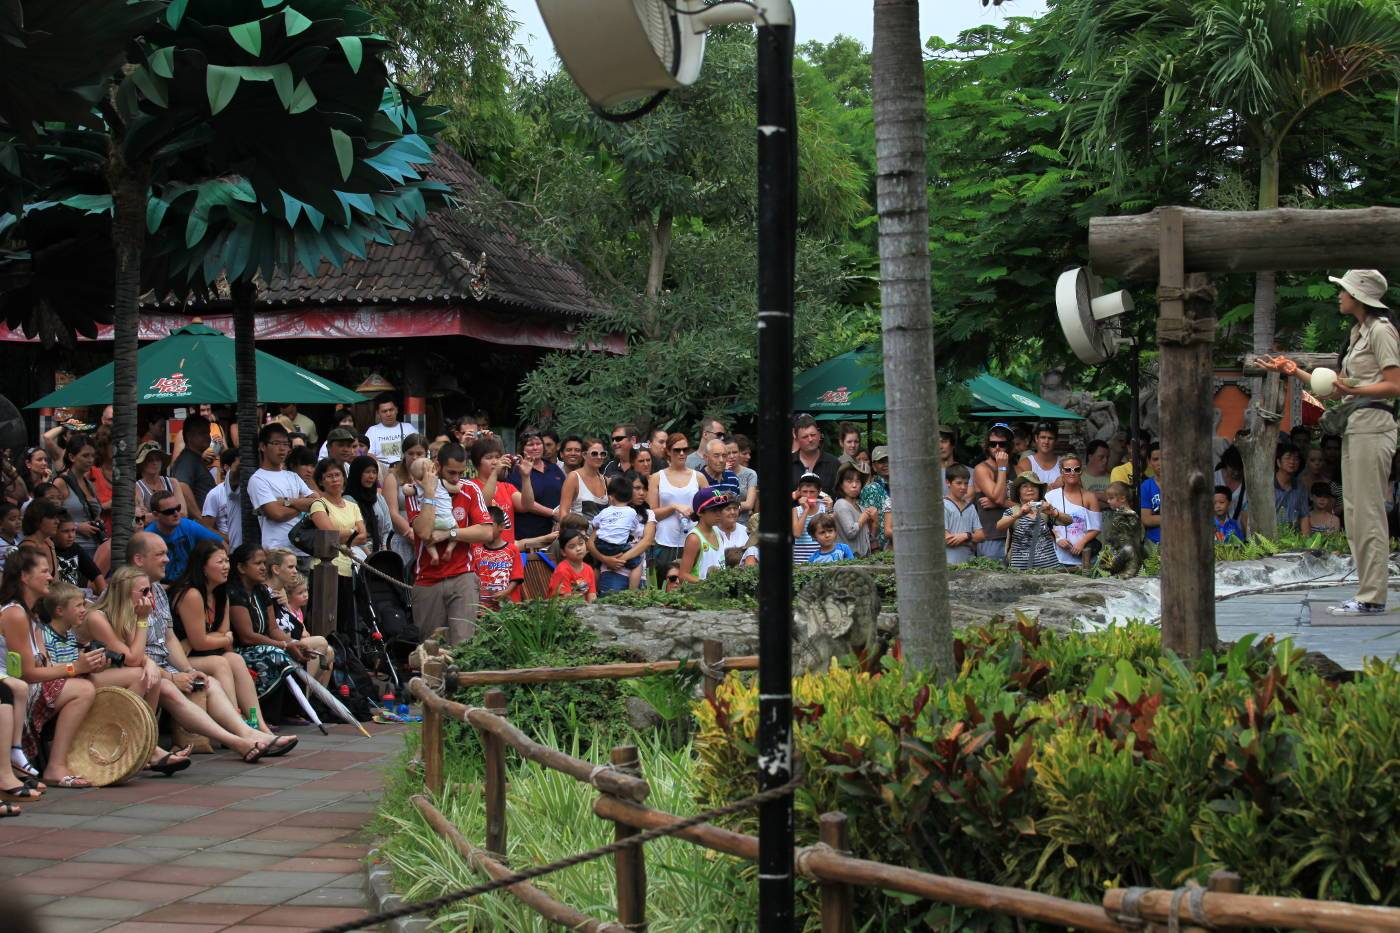 Mara River Safari Lodge Animal Show at Bali Safari